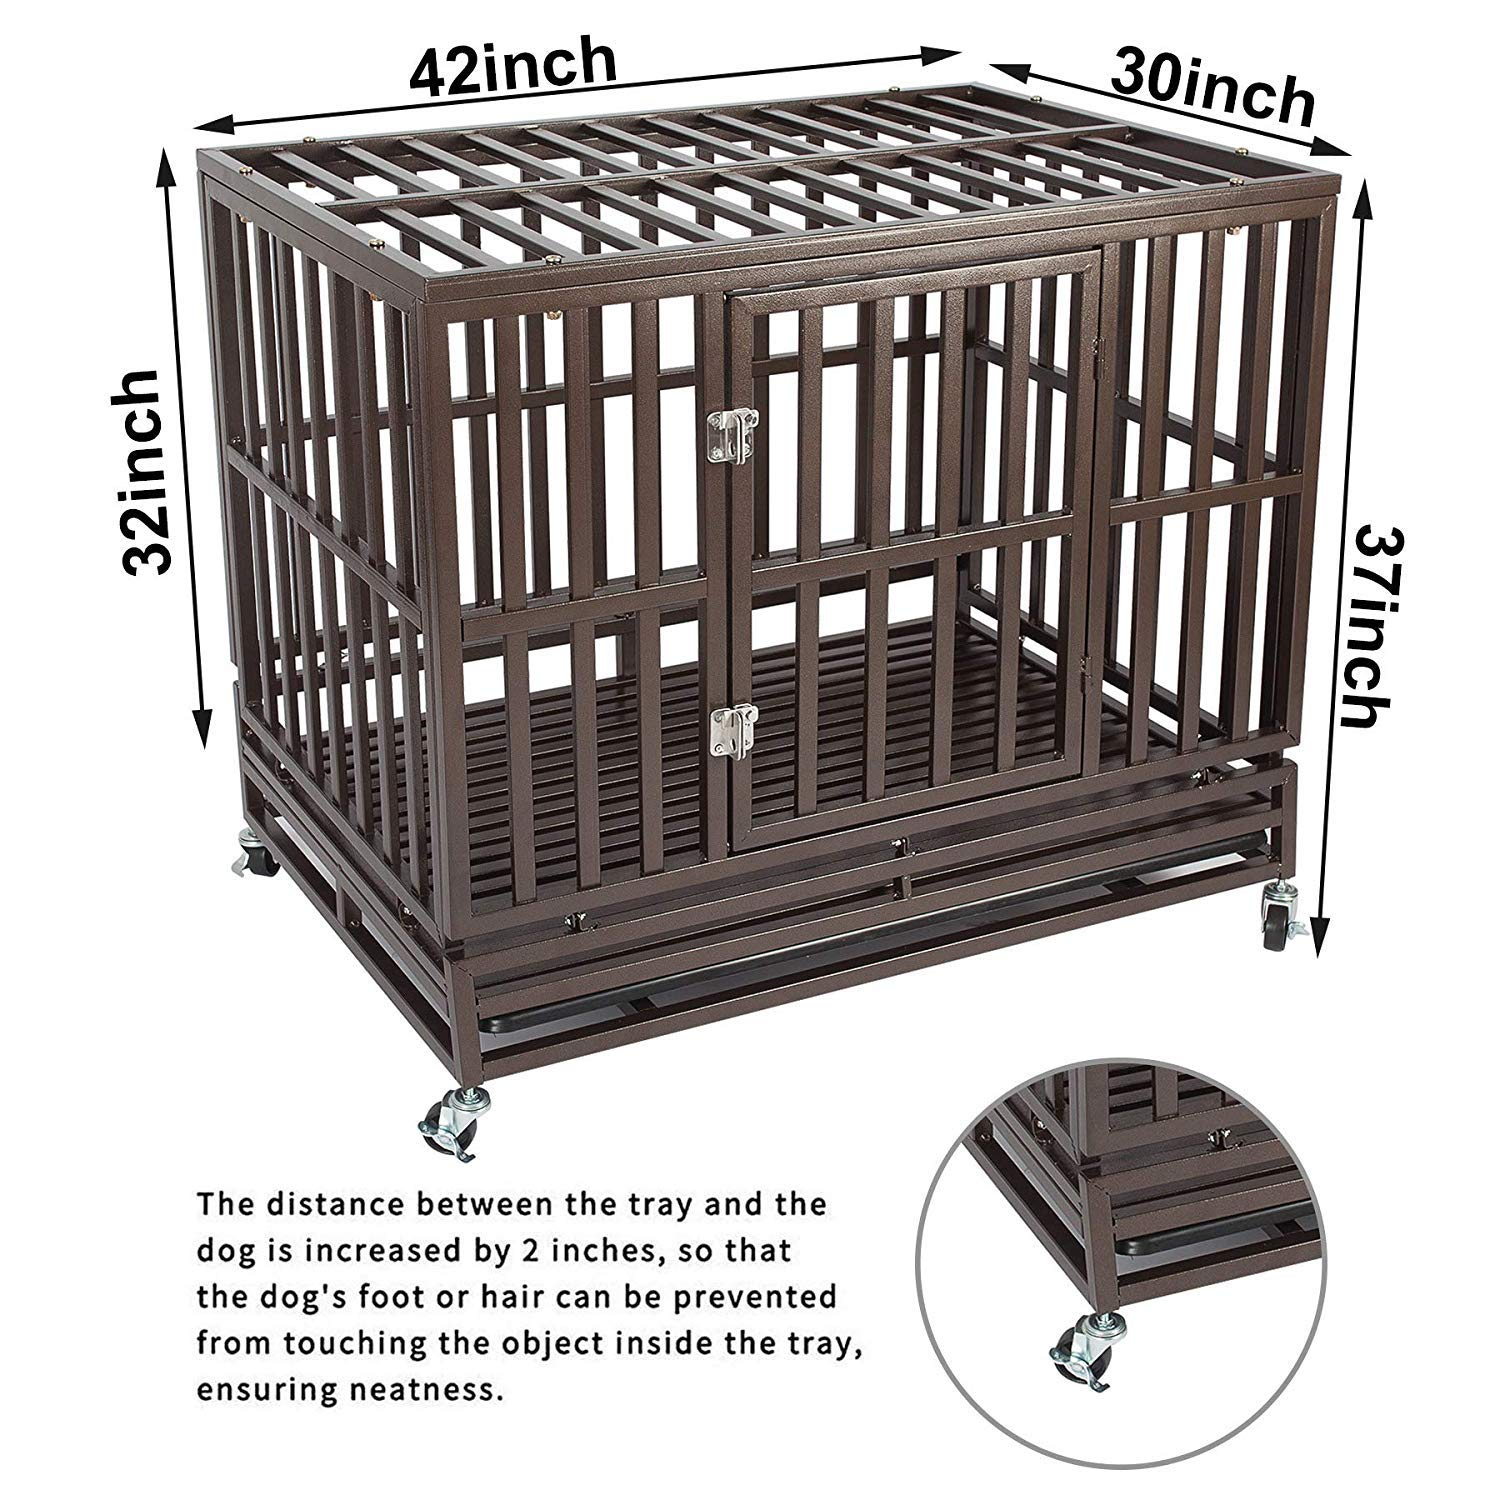 Haige Pet Your Pet Nanny 42'' Heavy Duty Dog Crate Cage Kennel and Playpen Steel Strong Metal for Medium and Large Dogs with Patent Lock and Four Lockable Wheels, Black by Haige Pet Your Pet Nanny (Image #7)